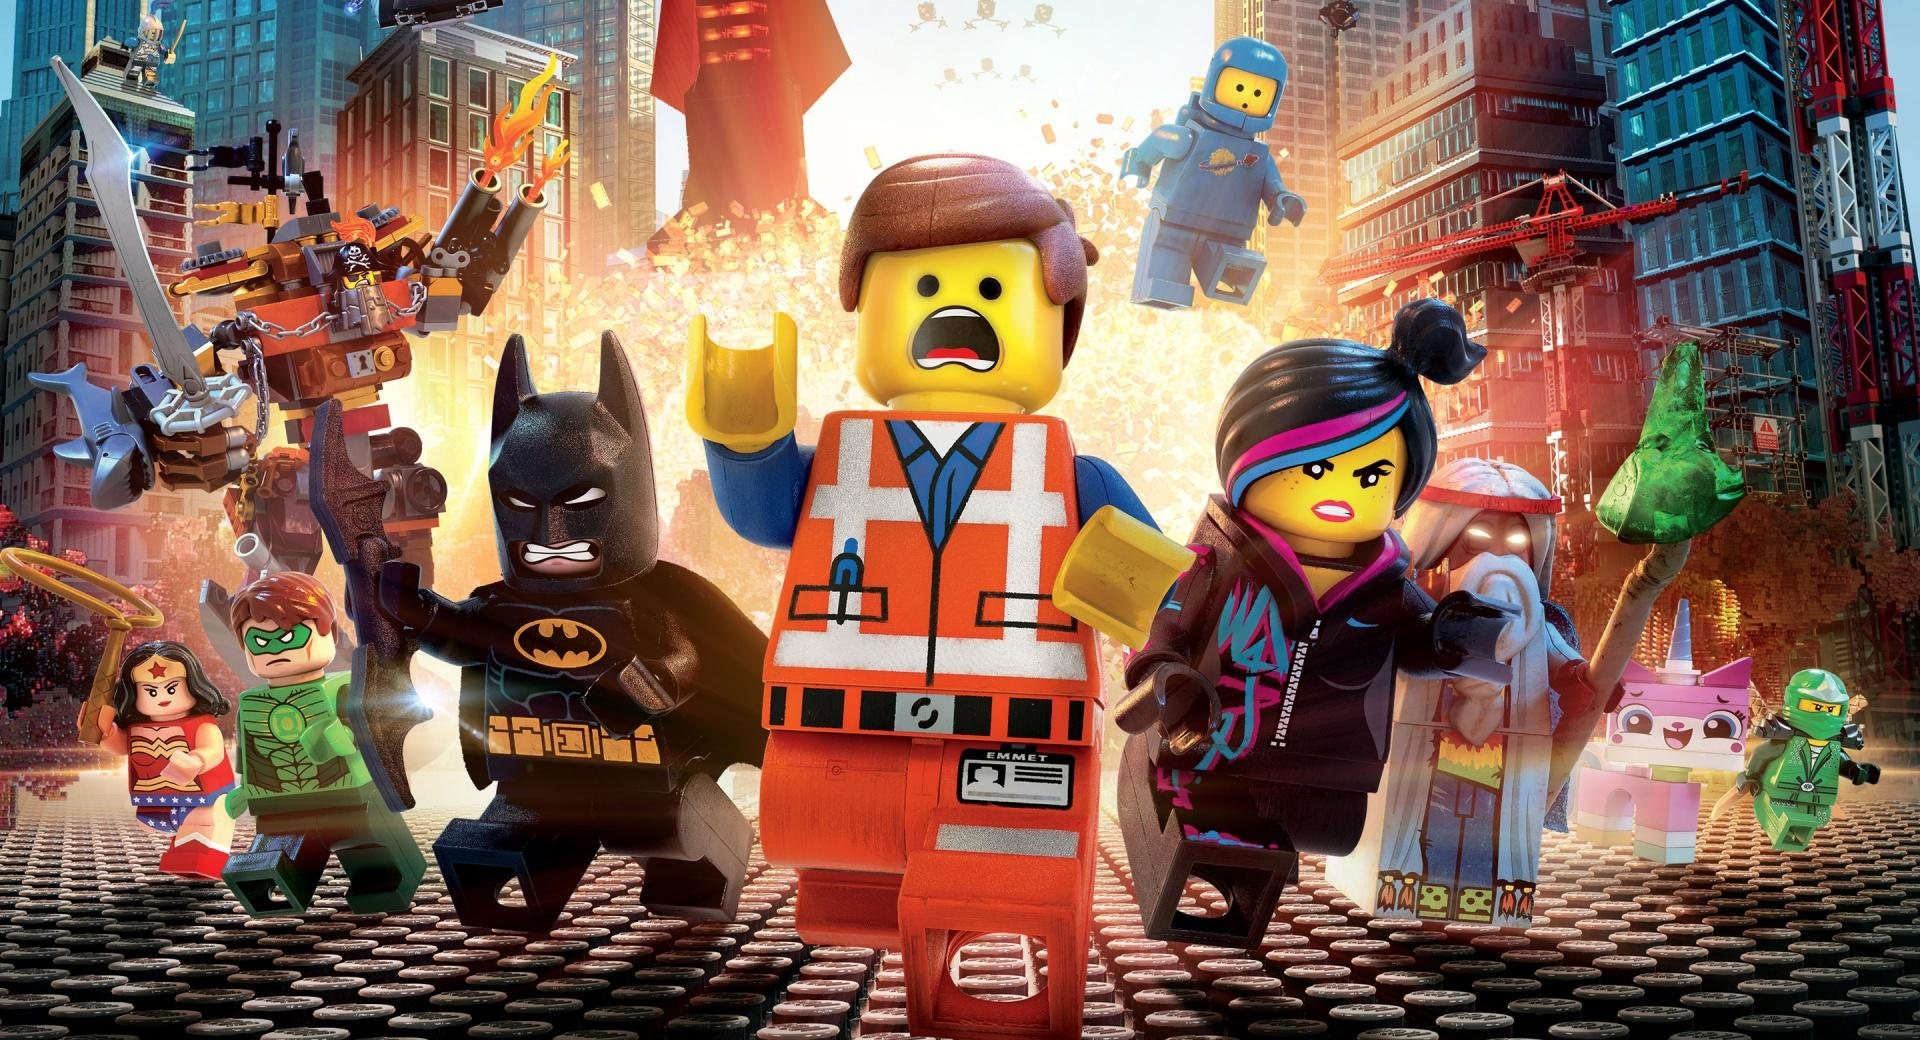 The Lego Movie 2014 wallpapers HD quality